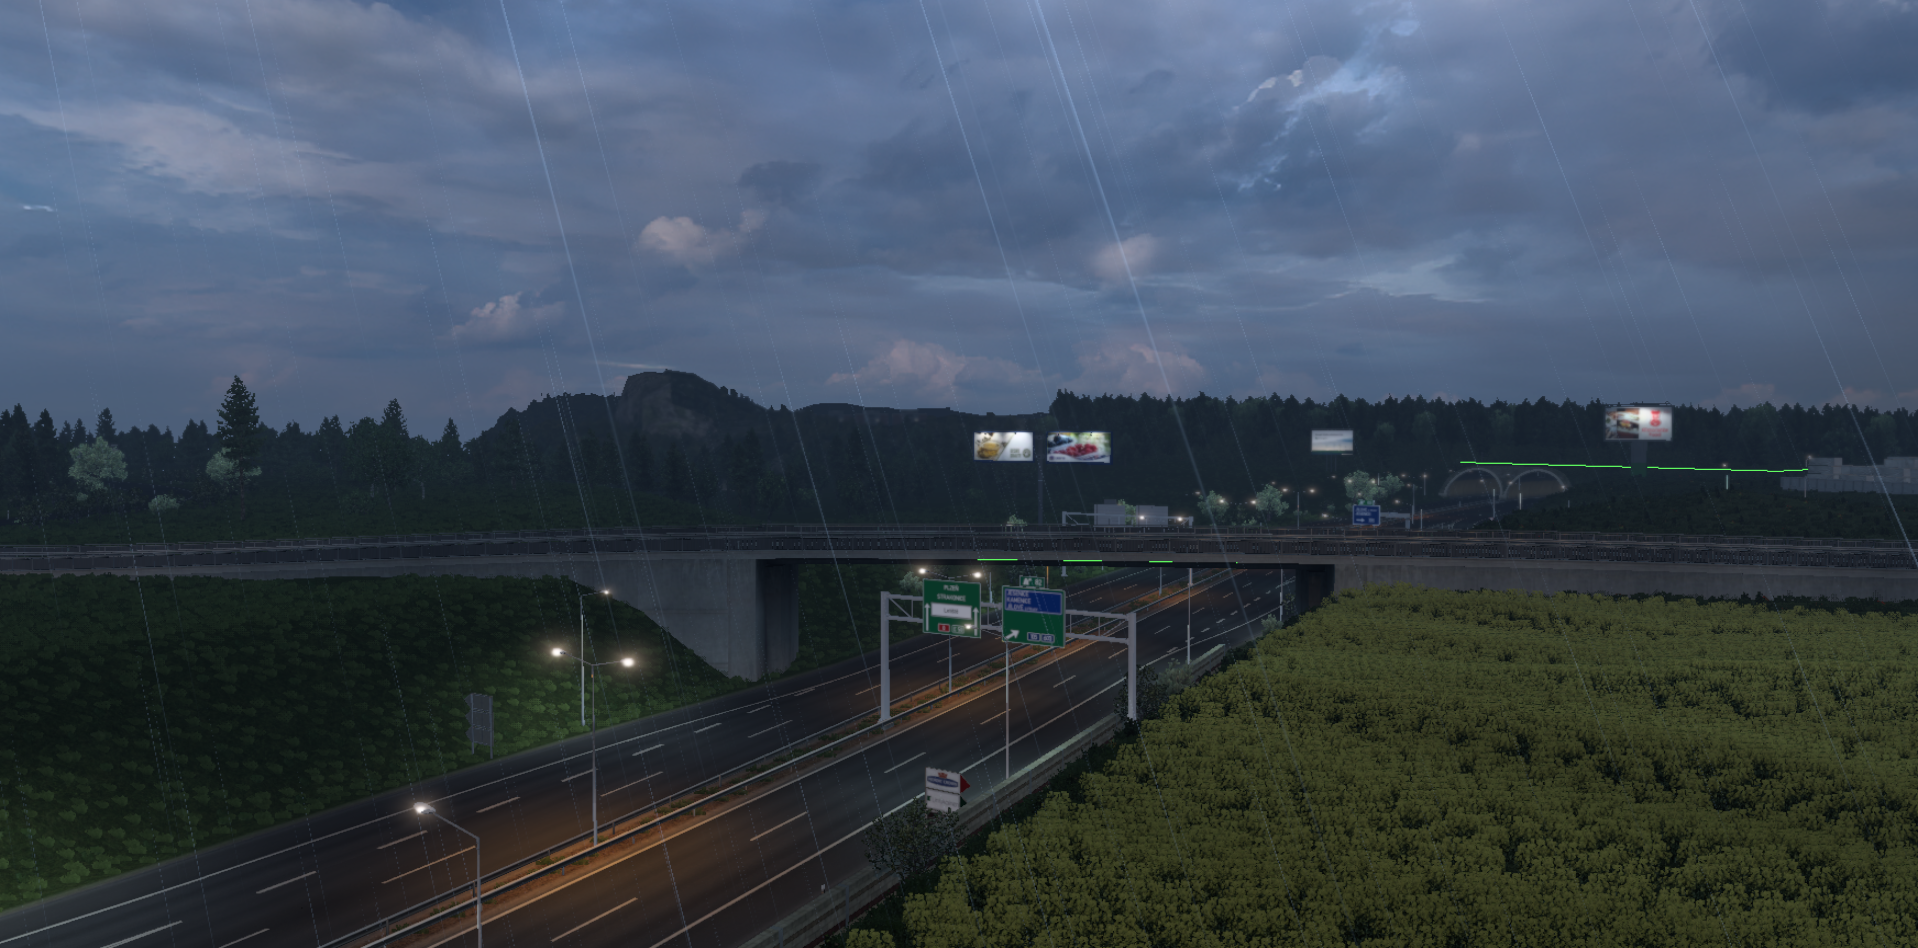 ets2_20210804_144444_00.png